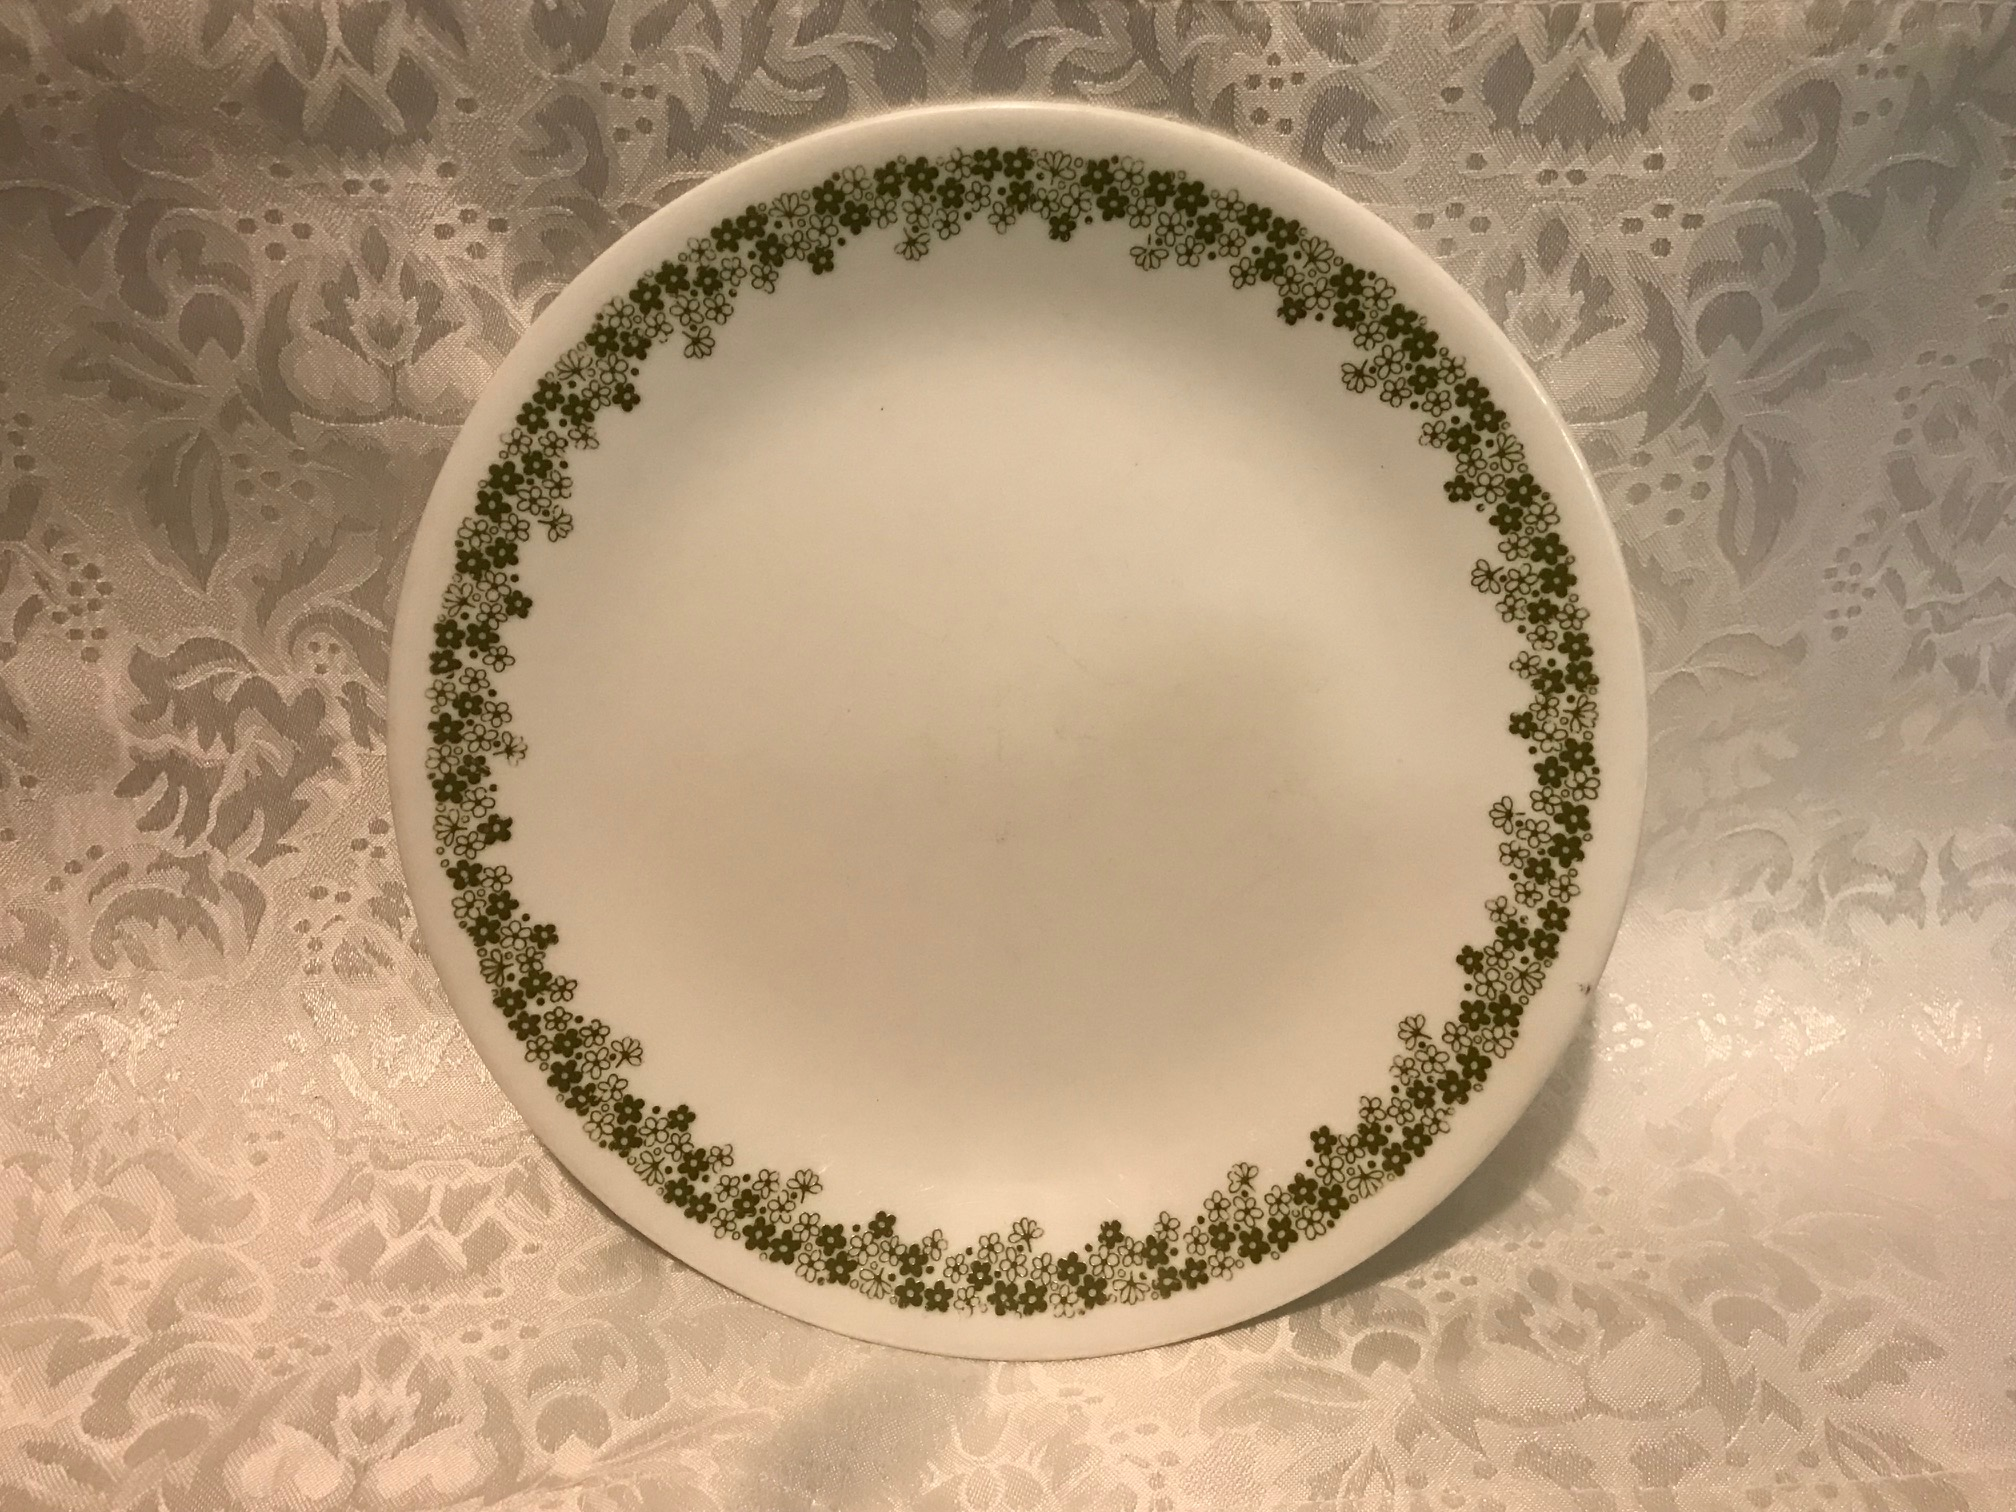 Corelle Plate With Crazy Daisy Spring Blossom Green Border Pattern: 15,200 ppm Lead + Cadmium